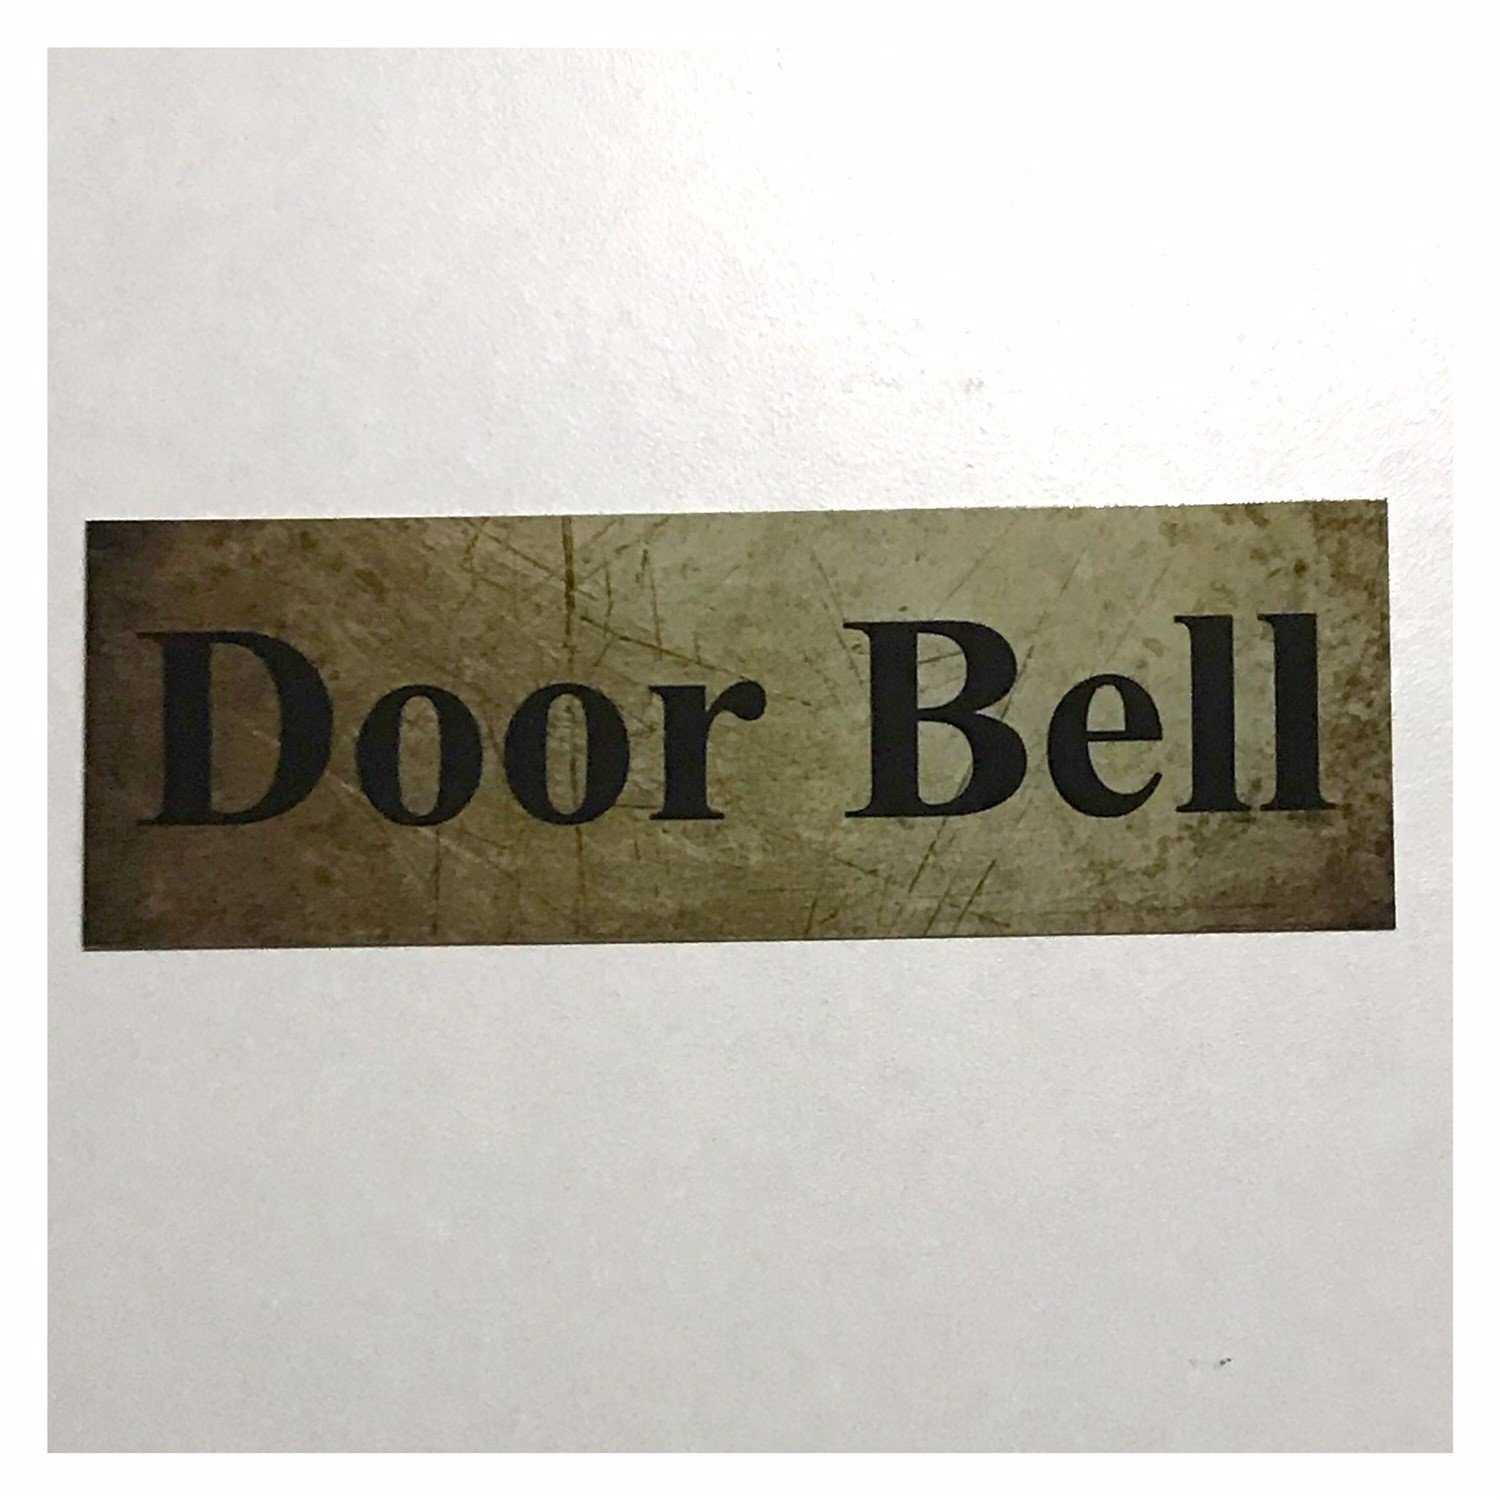 Door Bell Vintage Style Sign Wall Plaque or Hanging Plaques & Signs The Renmy Store